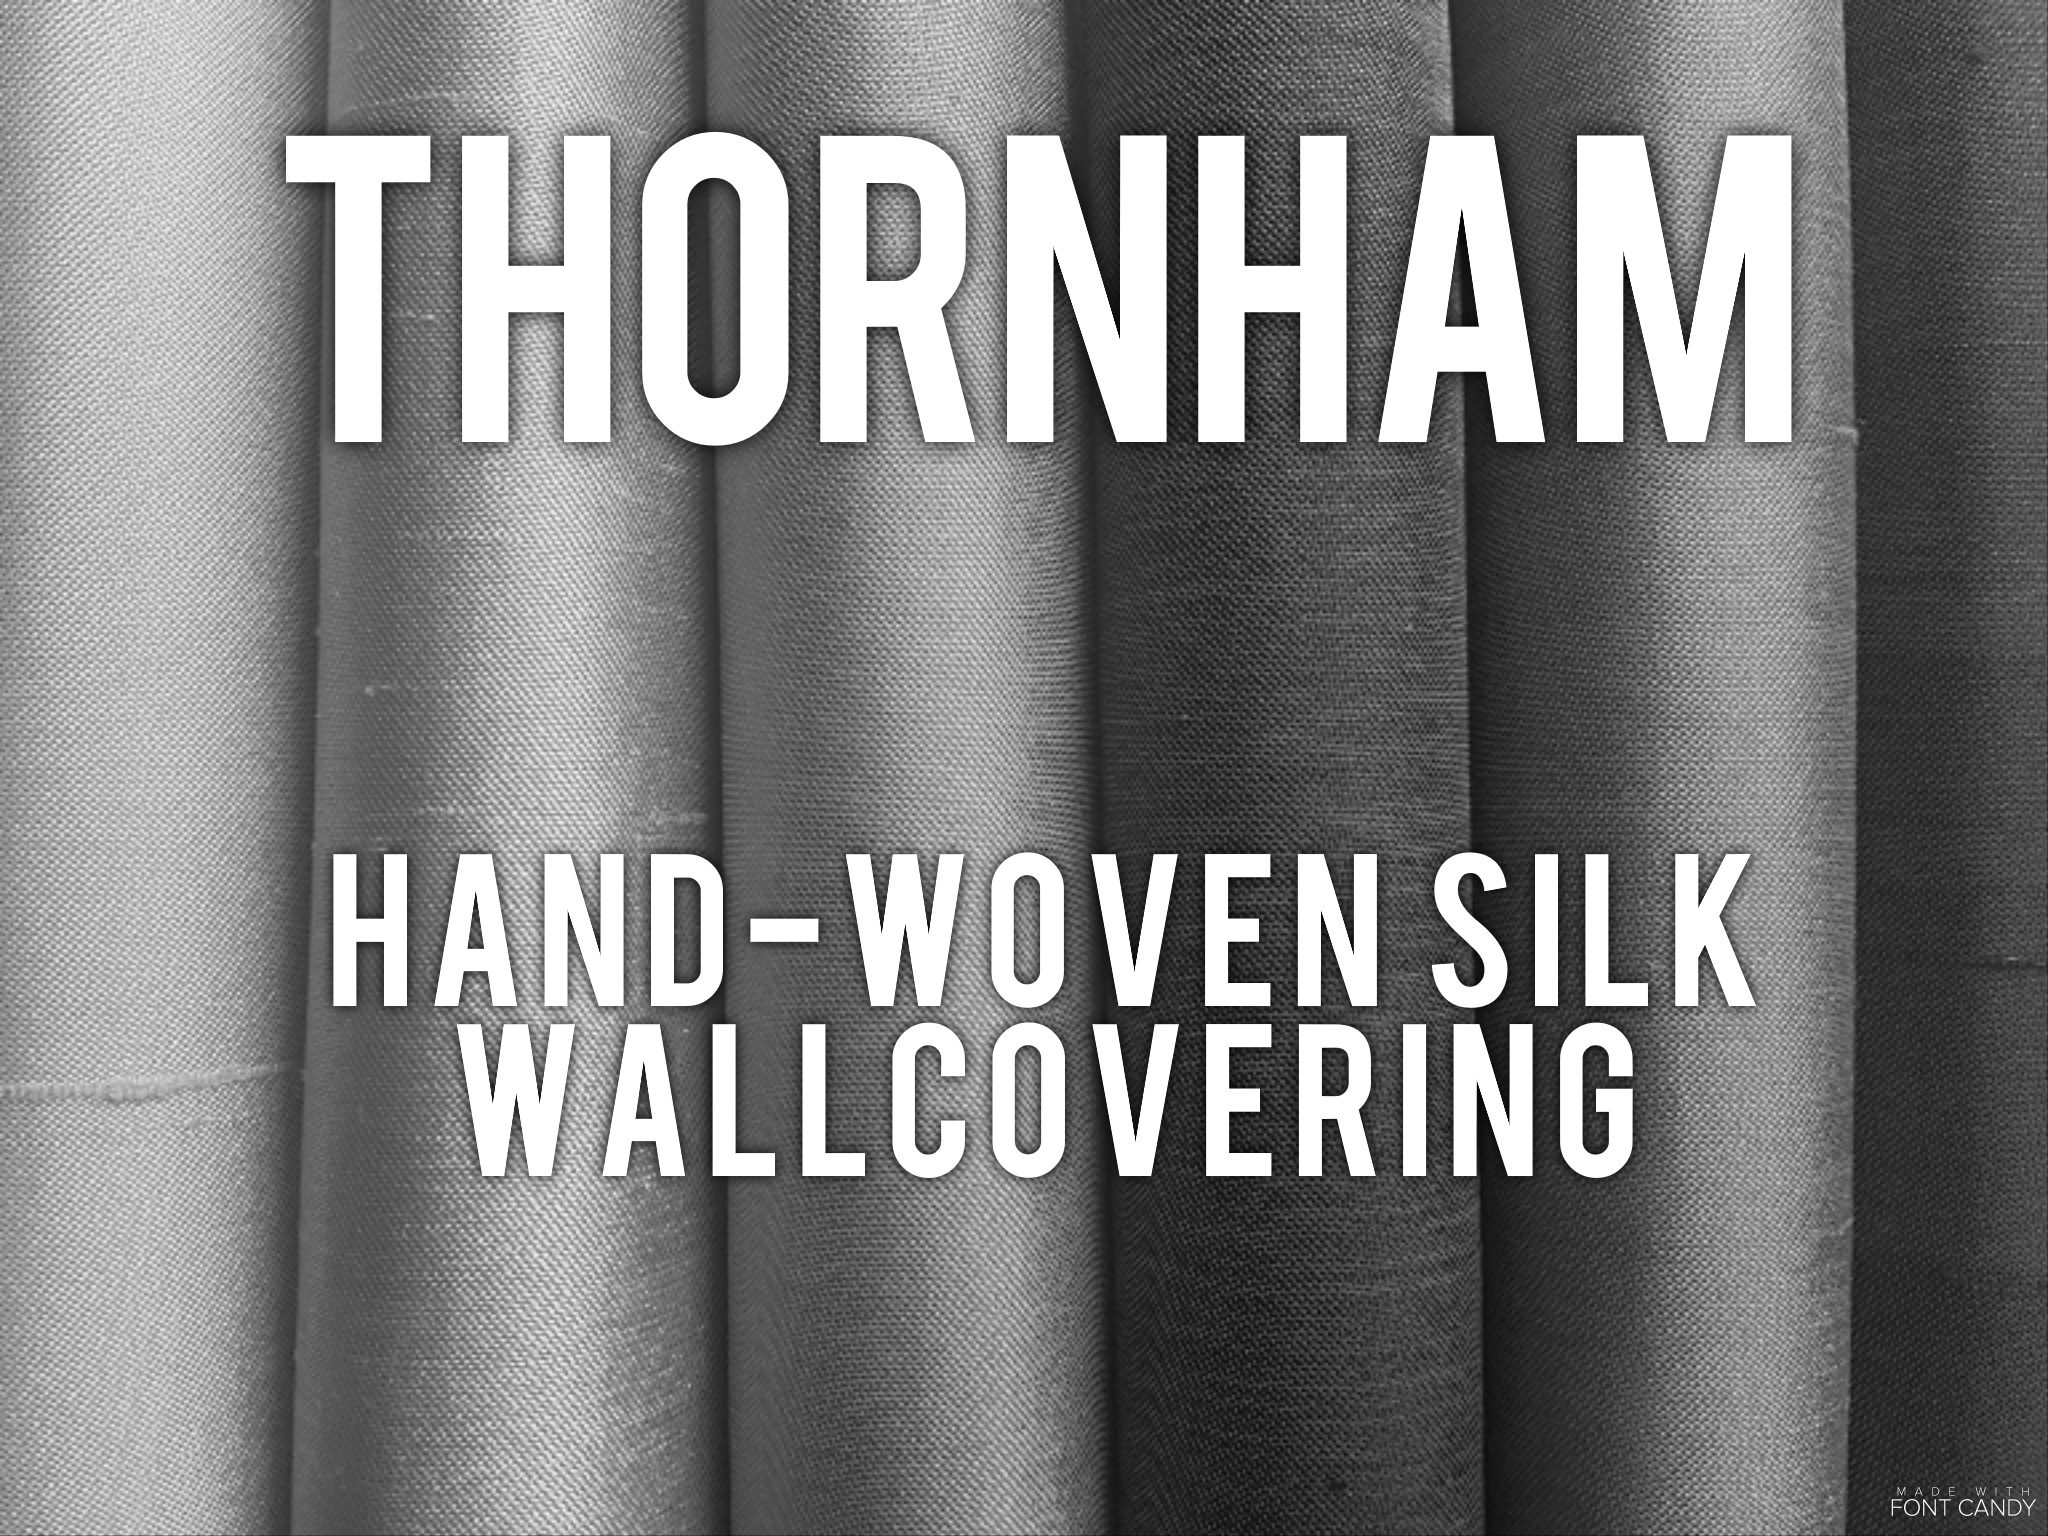 Thornham - Hand-woven silk wallcovering